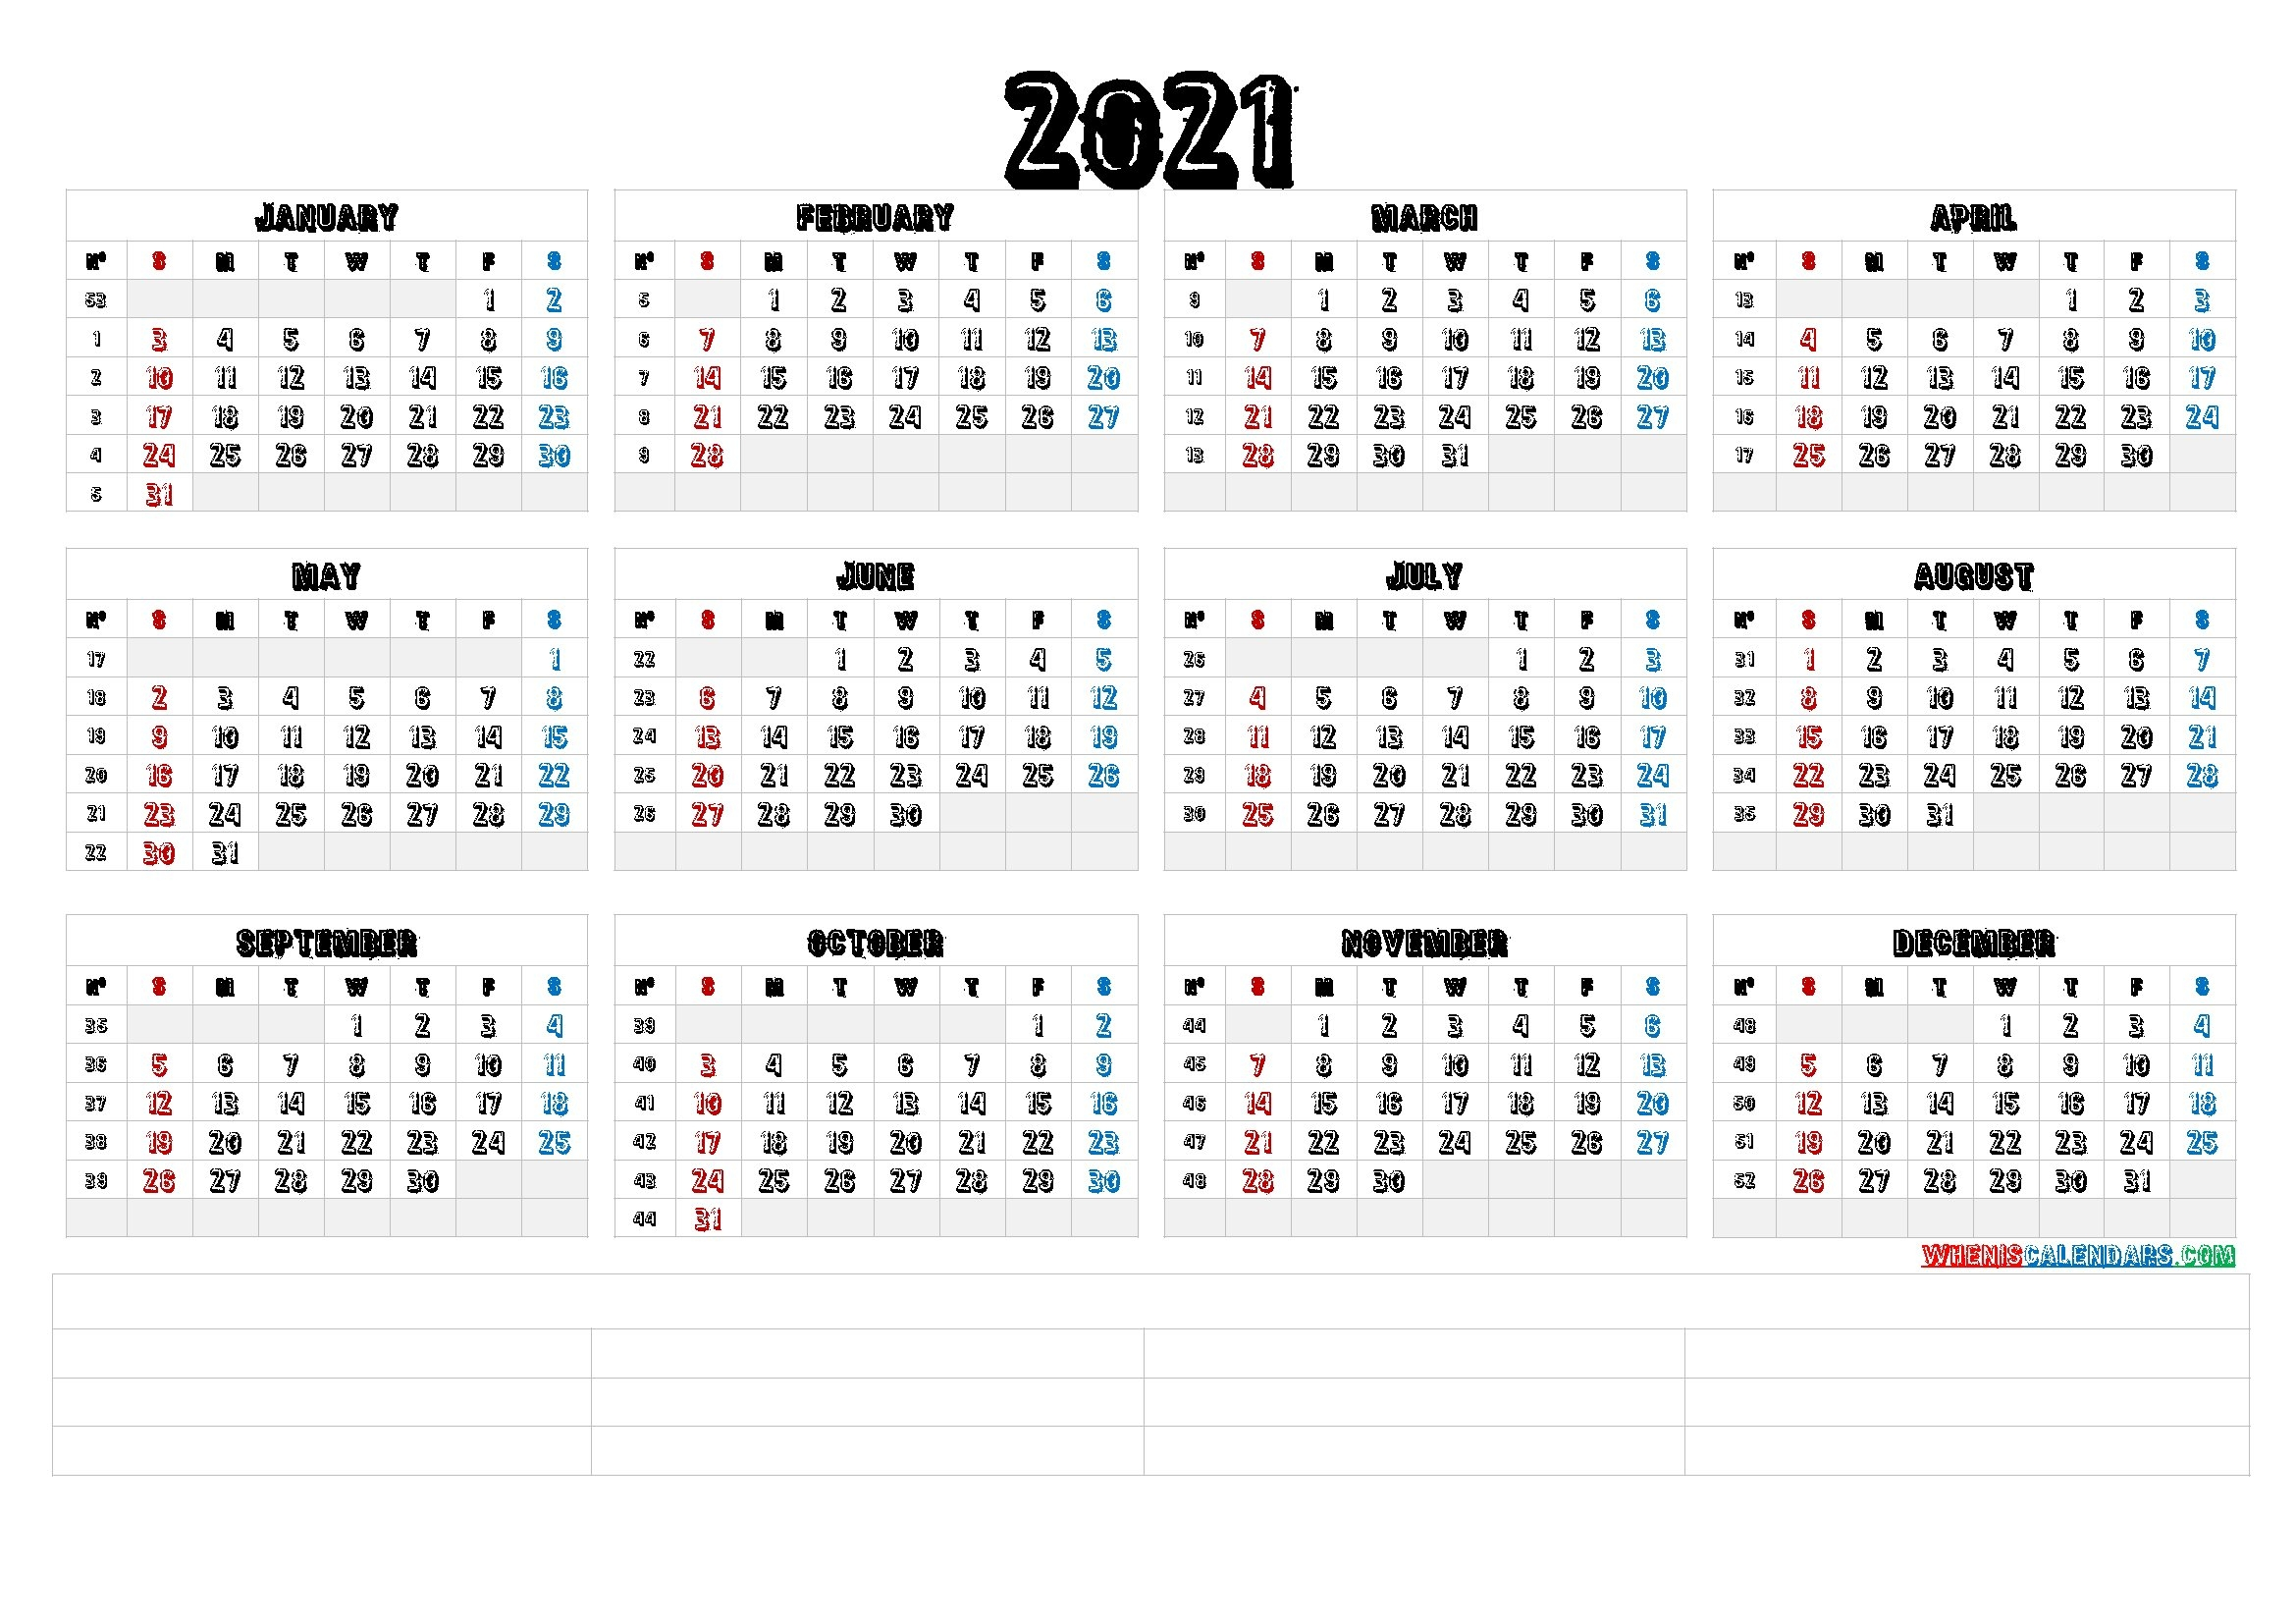 2021 Calendar With Week Numbers Printable (6 Templates) - Free Printable 2020 Monthly Calendar intended for 2021 Calendar Image By Week Numbers Graphics